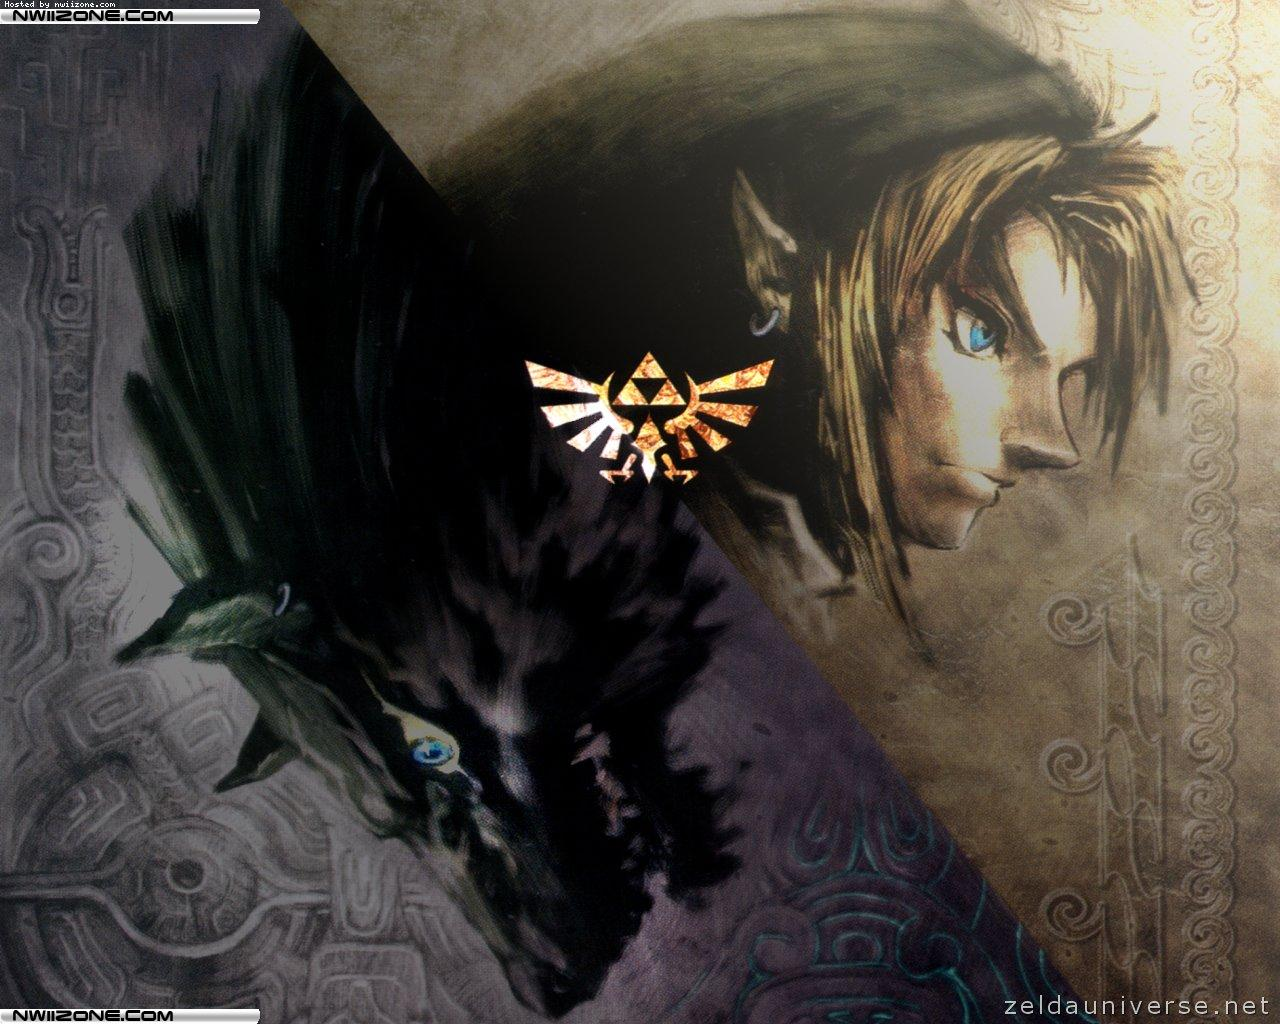 http://1.bp.blogspot.com/-AmDNLKOeK0c/T4NTMhqHwOI/AAAAAAAAC0Y/zw12kMA45bA/s1600/The_Legend_of_Zelda_Twilight_Princess_wii_wallpaper3.jpg